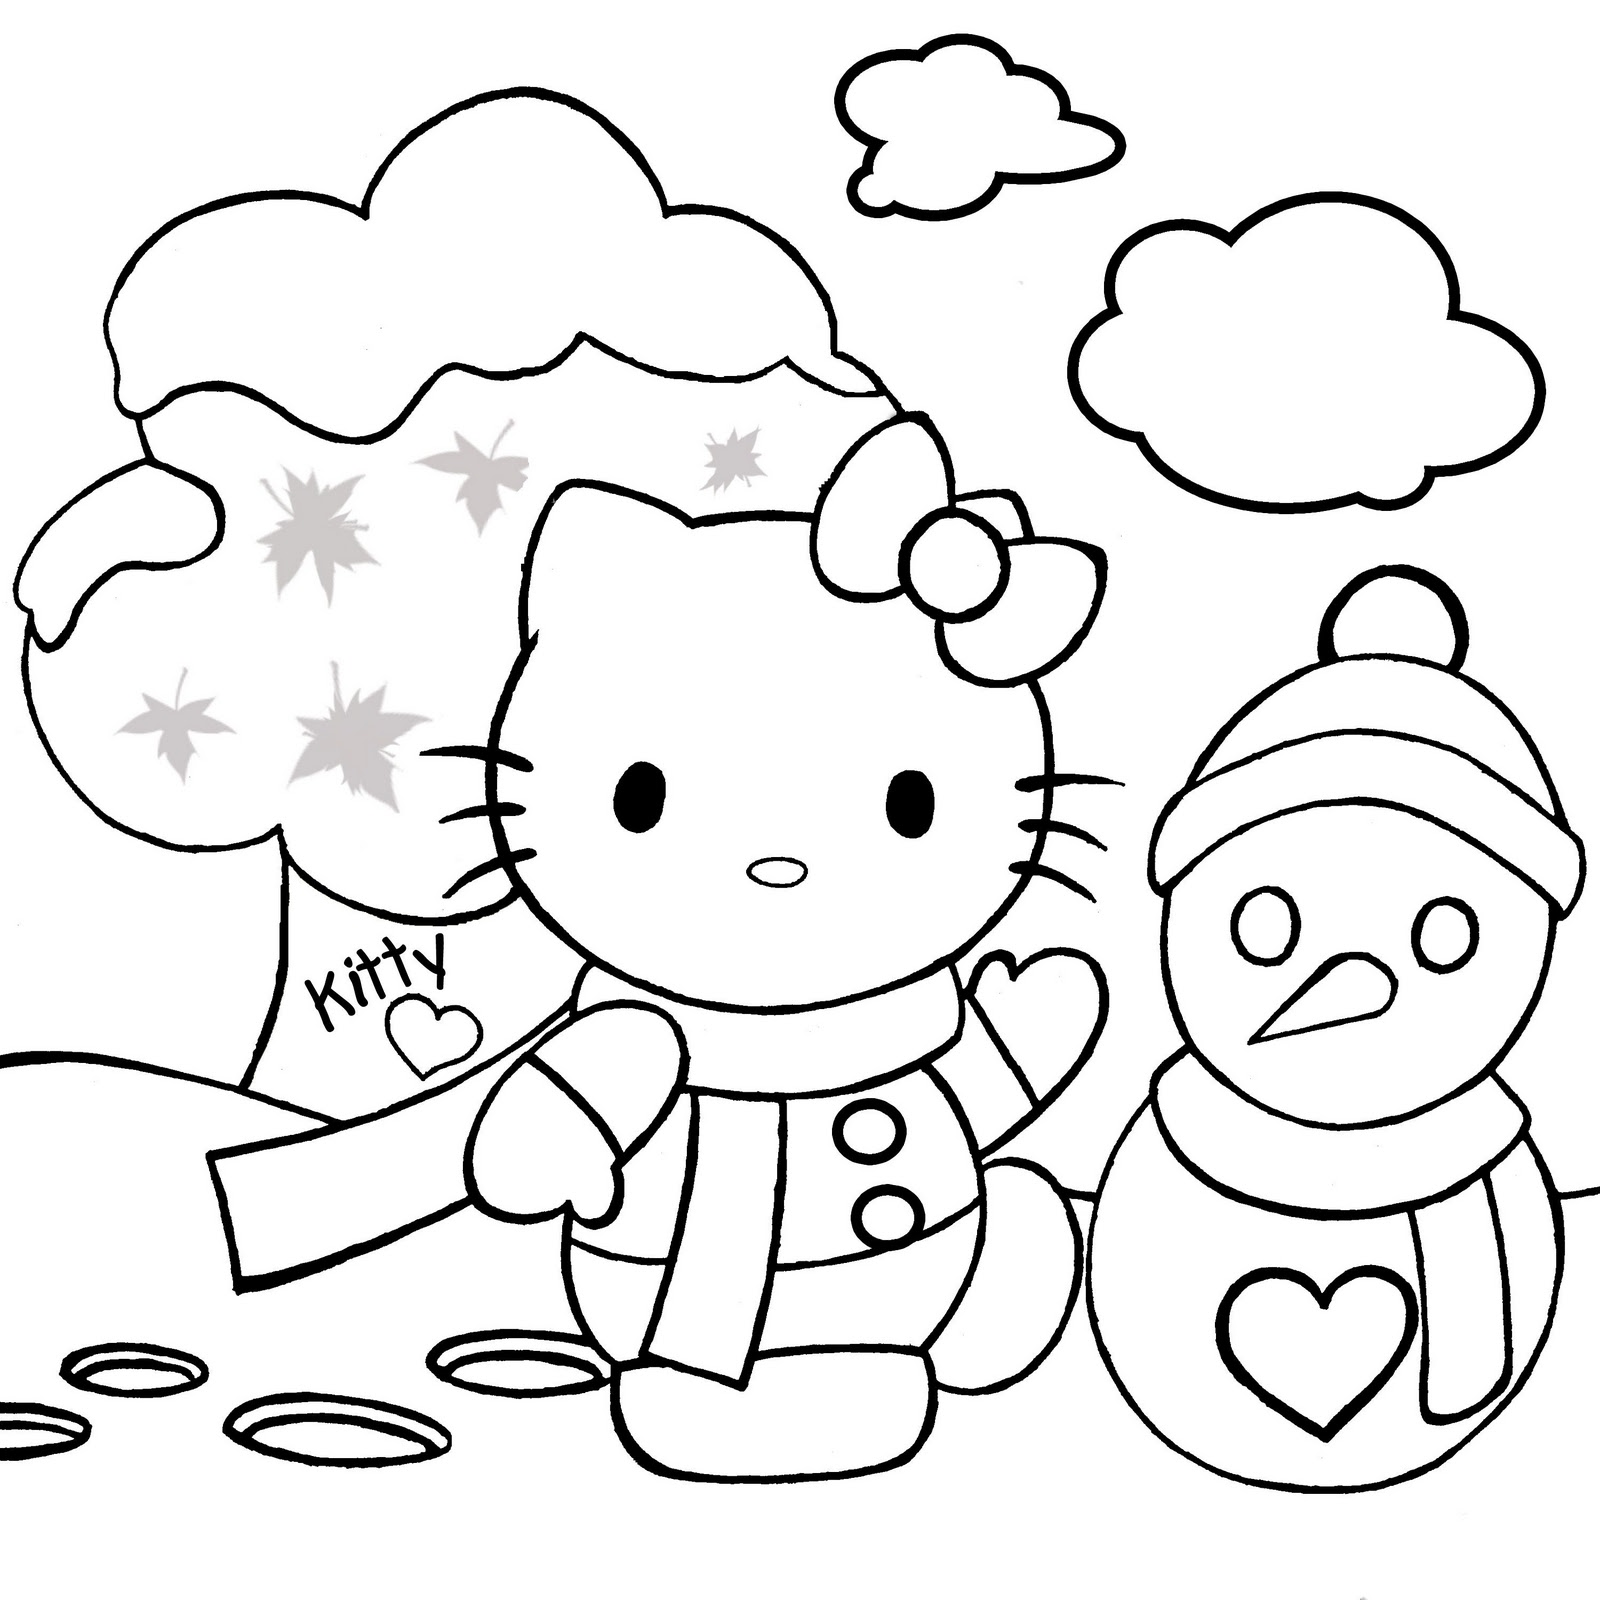 Kids christmas coloring and activity sheets - Christmas Coloring Pages